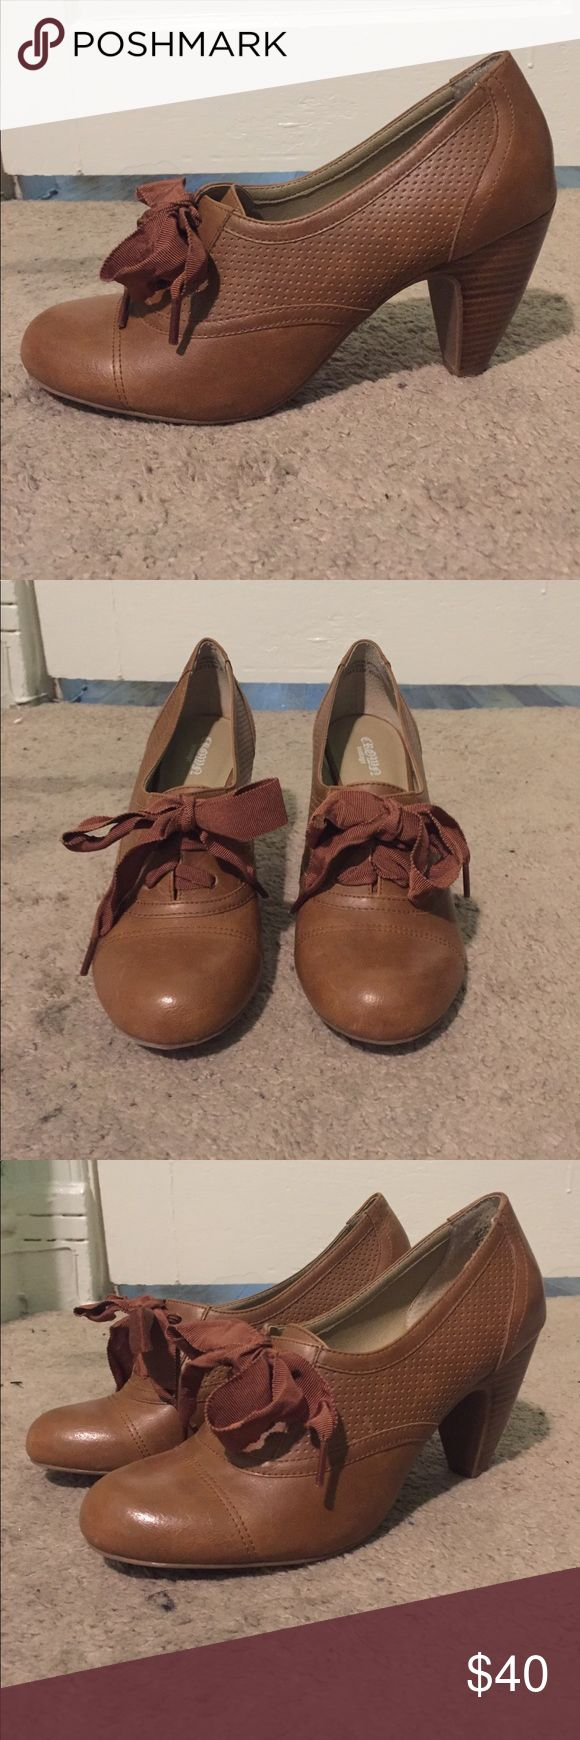 Brown Oxford Heels with Ribbon Laces Totally sweet, totally romantic, old fashioned Oxford heels. Worn once and too small for me, otherwise I'd keep them. So cute with skinny jeans, tights, or skirts. Shoes Ankle Boots & Booties